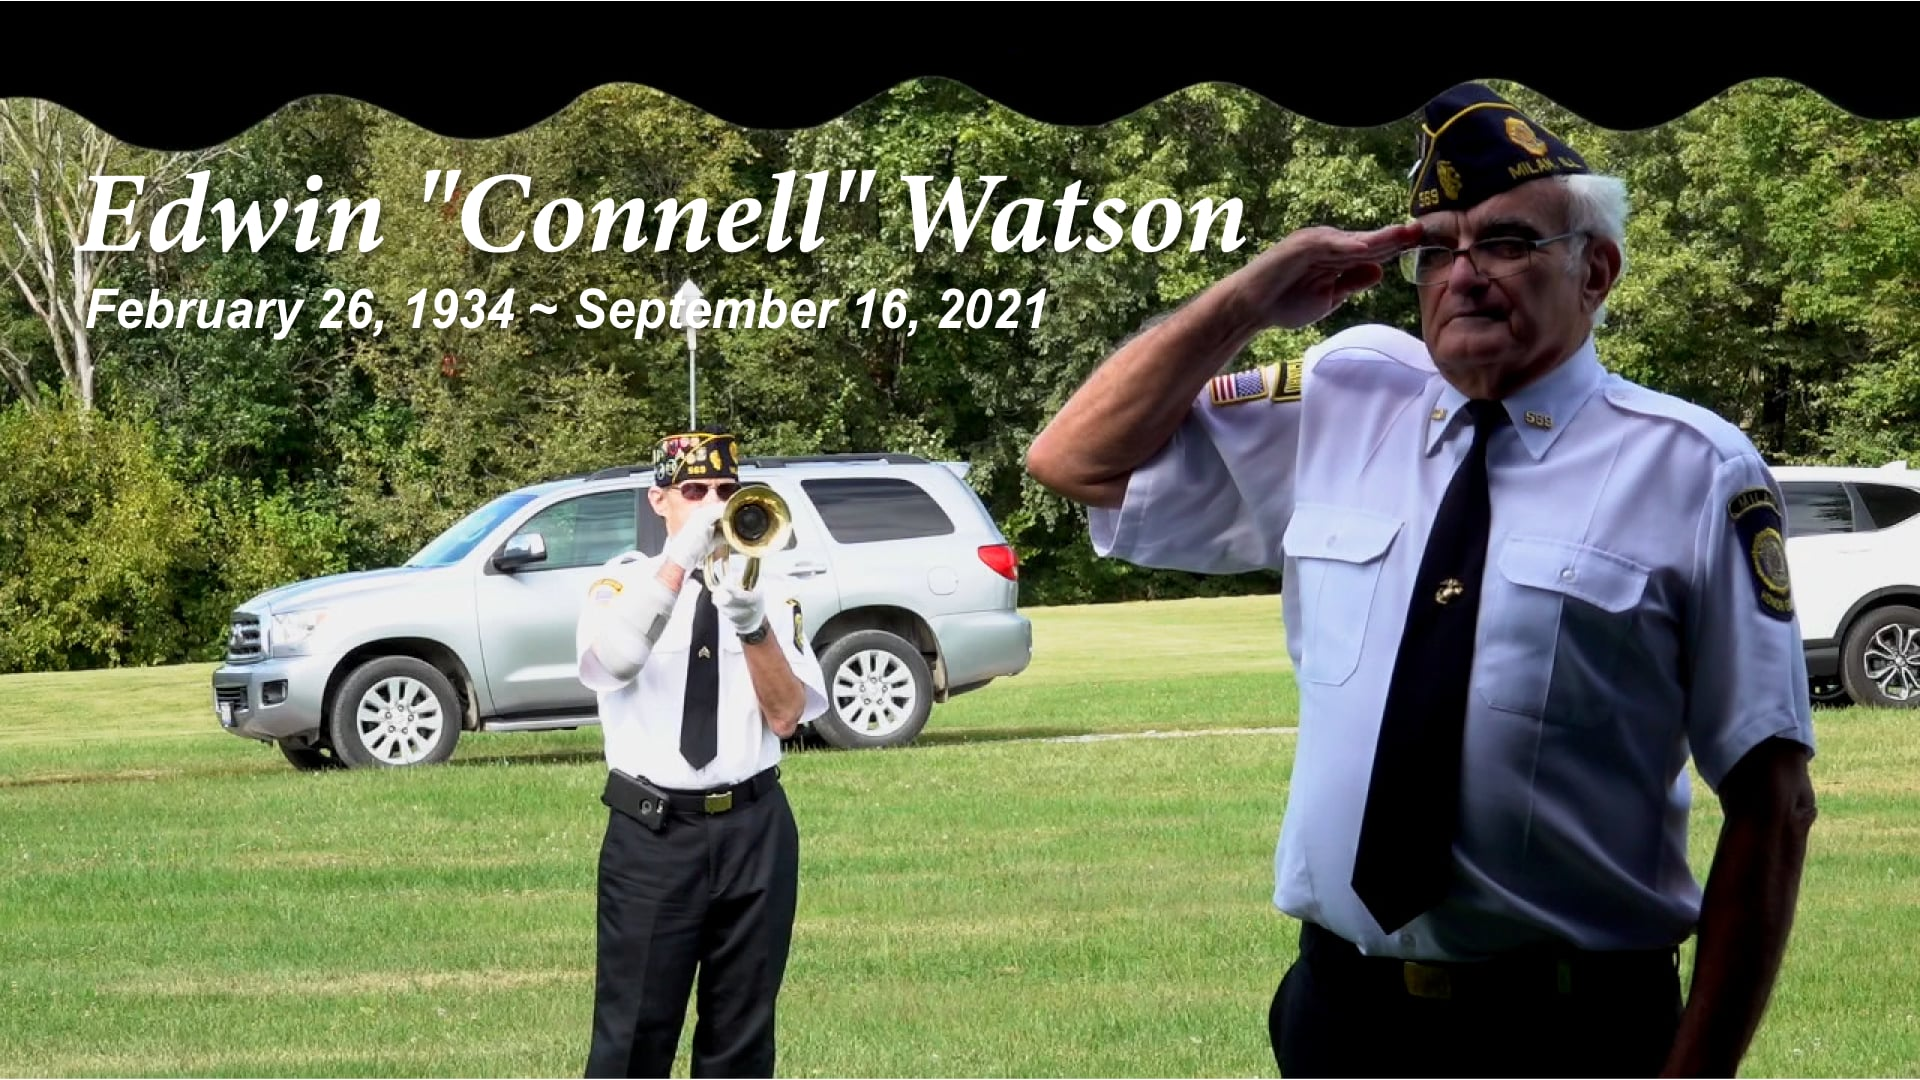 Burial Service for Edwin (Connell) Watson